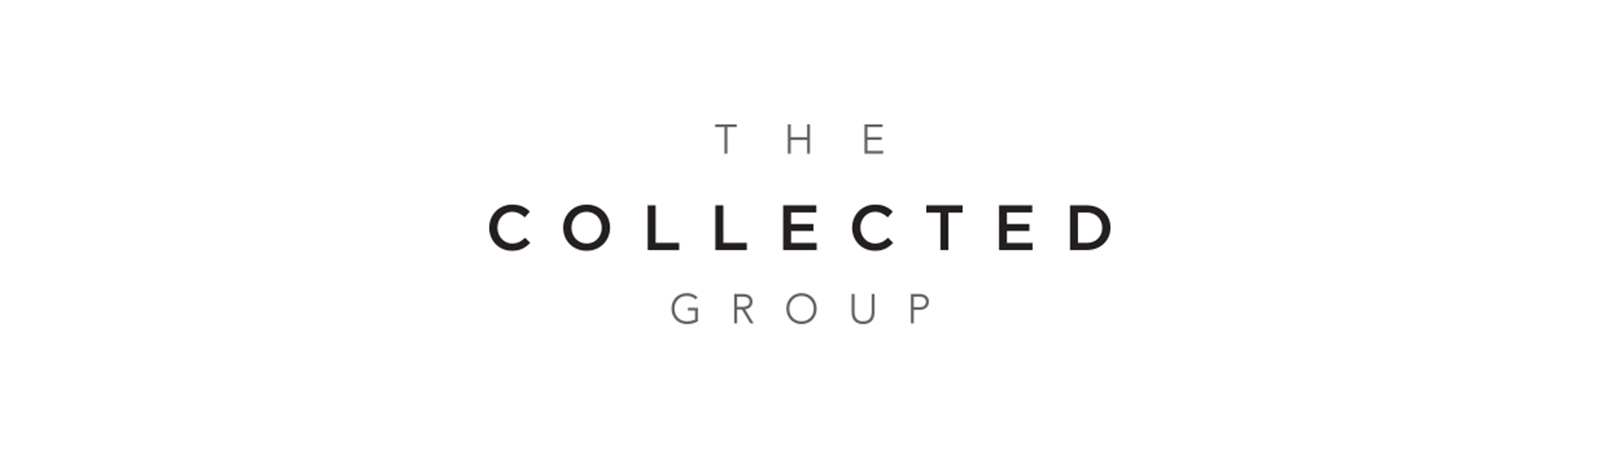 The Collected Group Logo Image